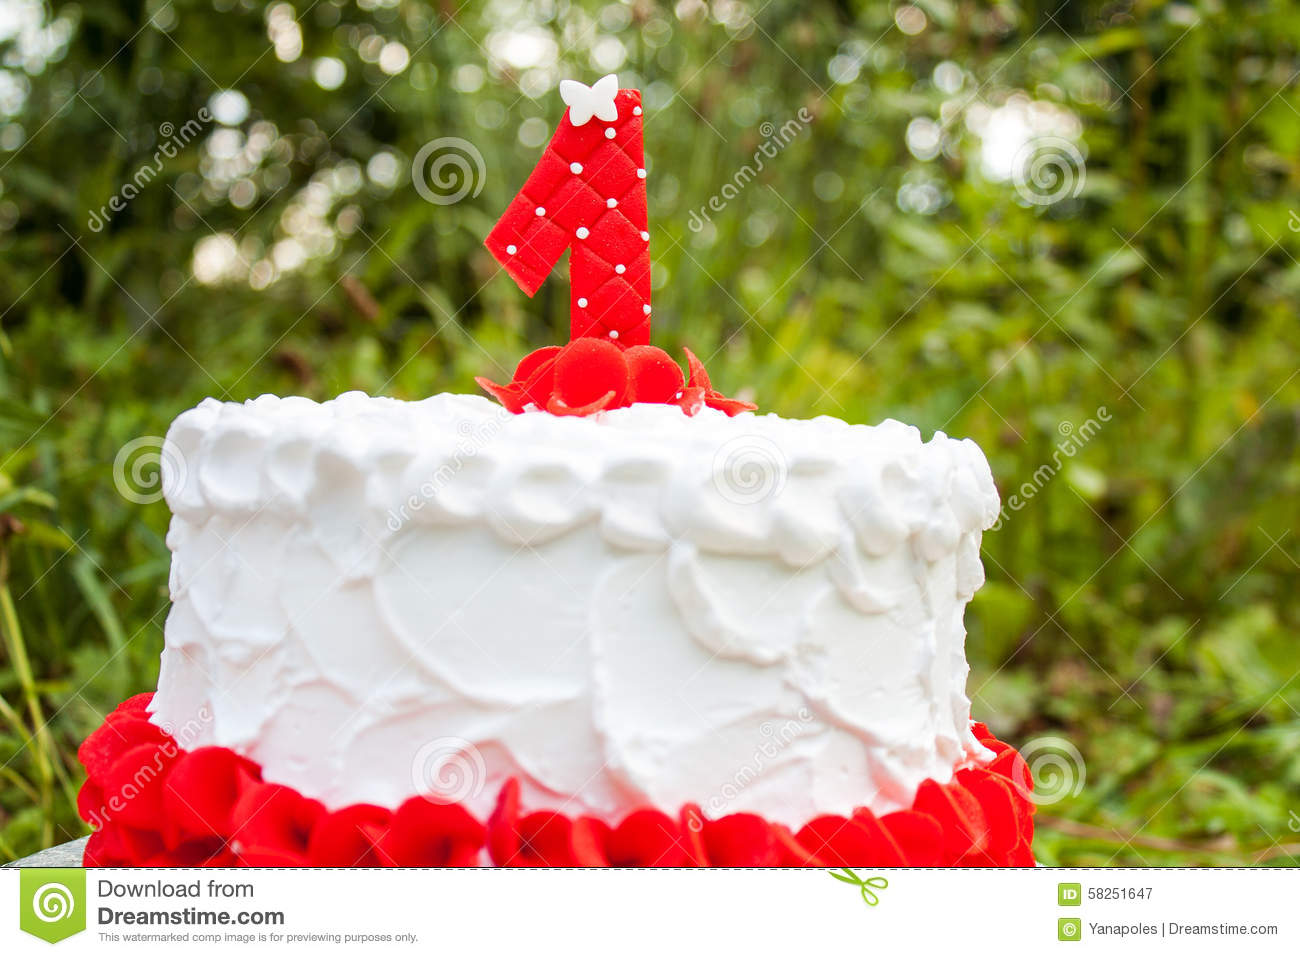 Excellent Cake For The First Birthday Stock Image Image Of Bright Design Funny Birthday Cards Online Alyptdamsfinfo